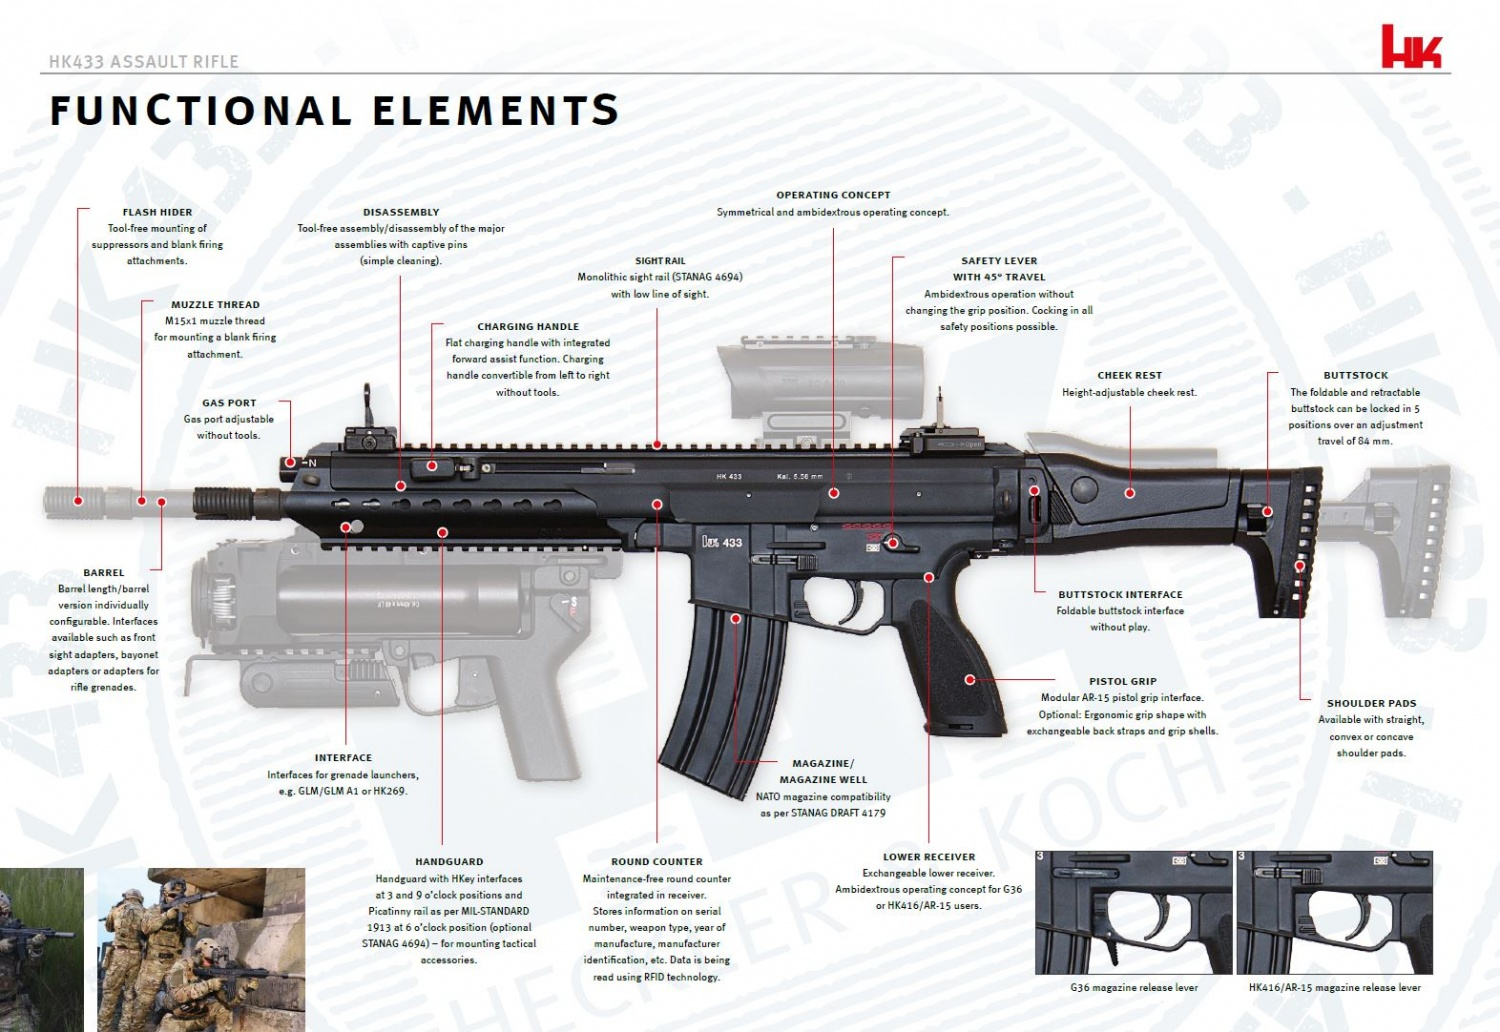 HK433 – The first practical test